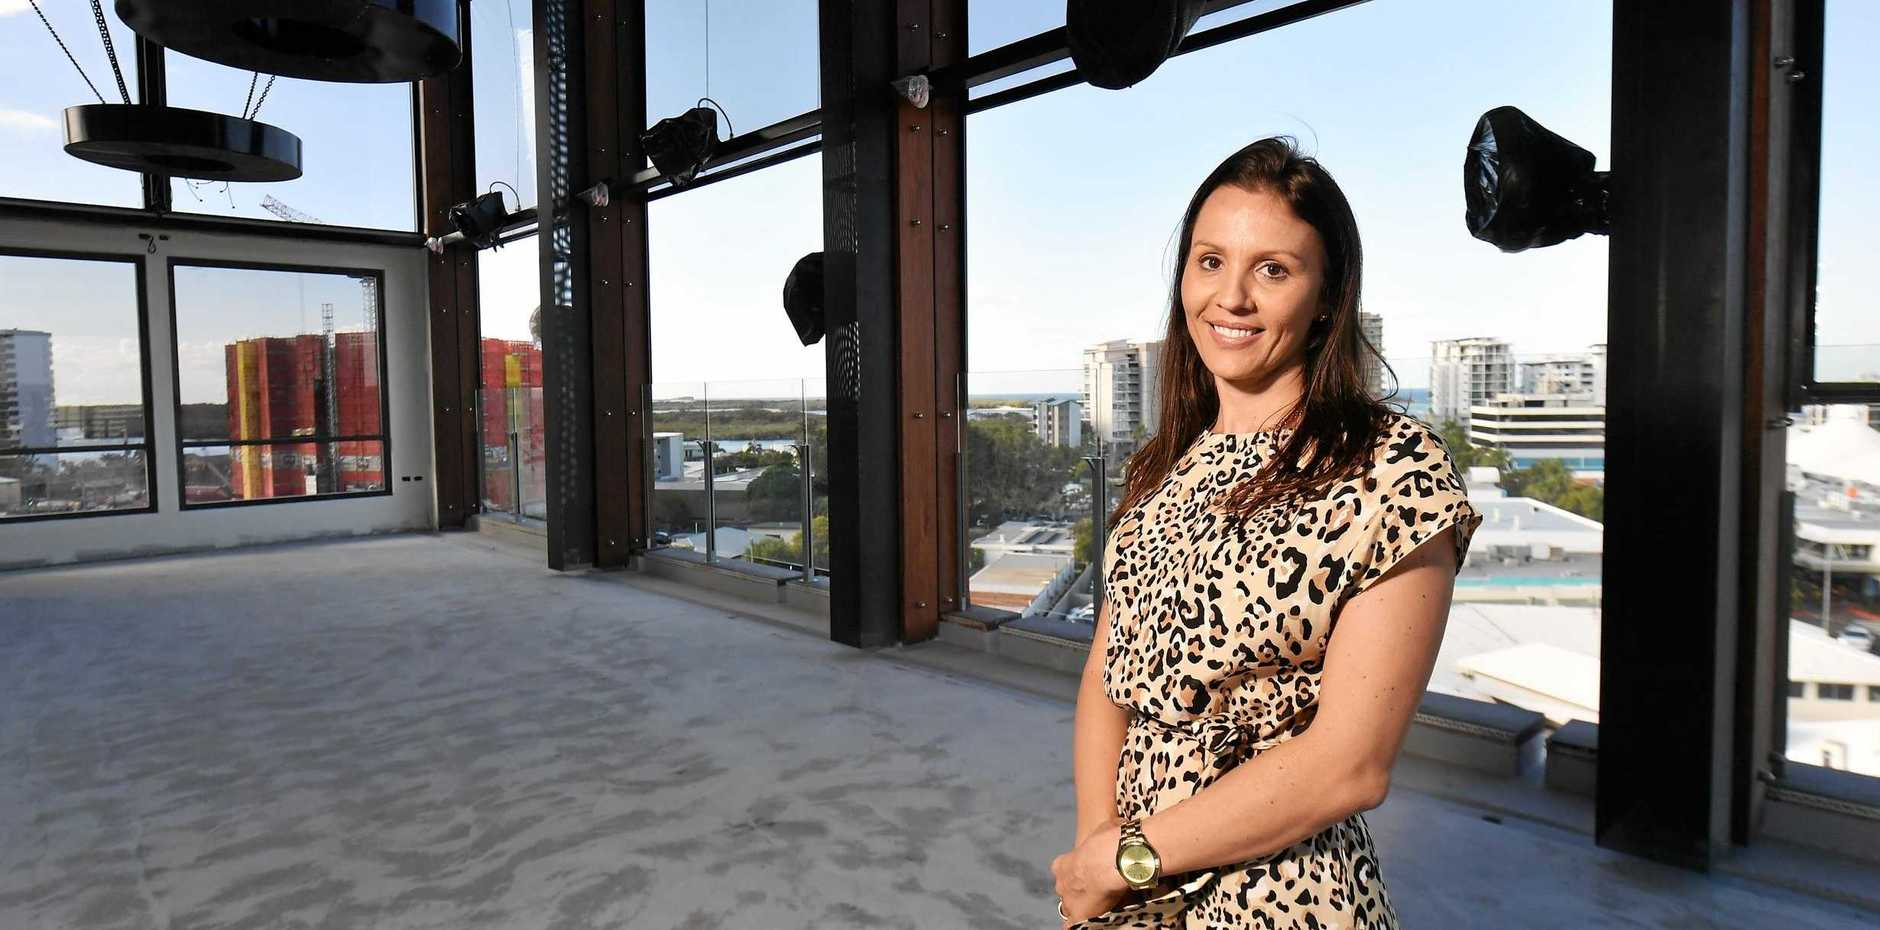 Charlene Dellaway is looking forward to opening Rooftop Bar and Garden in Maroochydore next month.